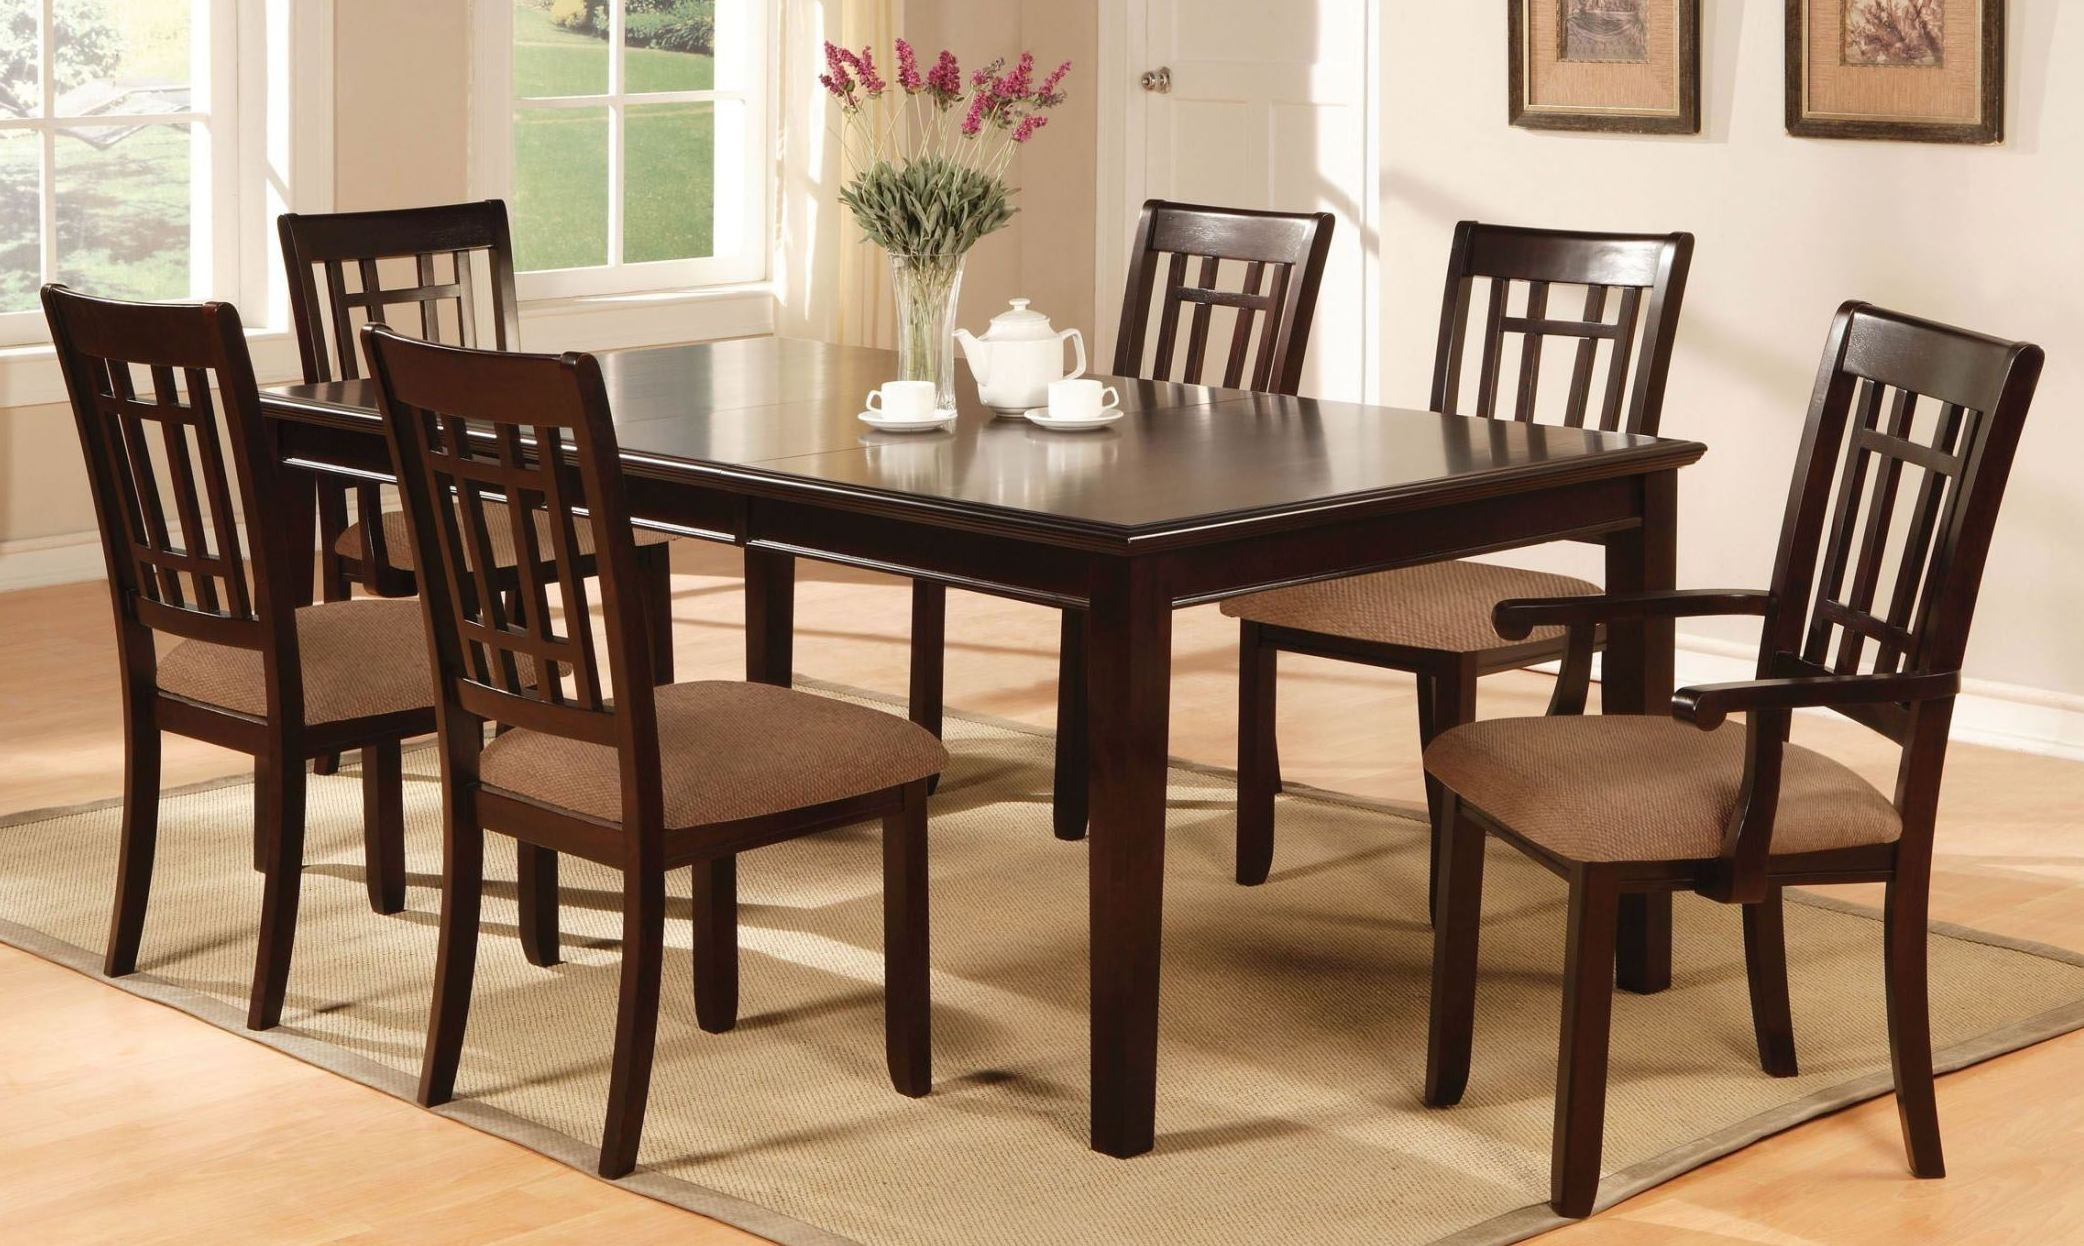 Central Park I Dark Cherry Rectangular Leg Dining Room Set From Furniture Of America (CM3100T